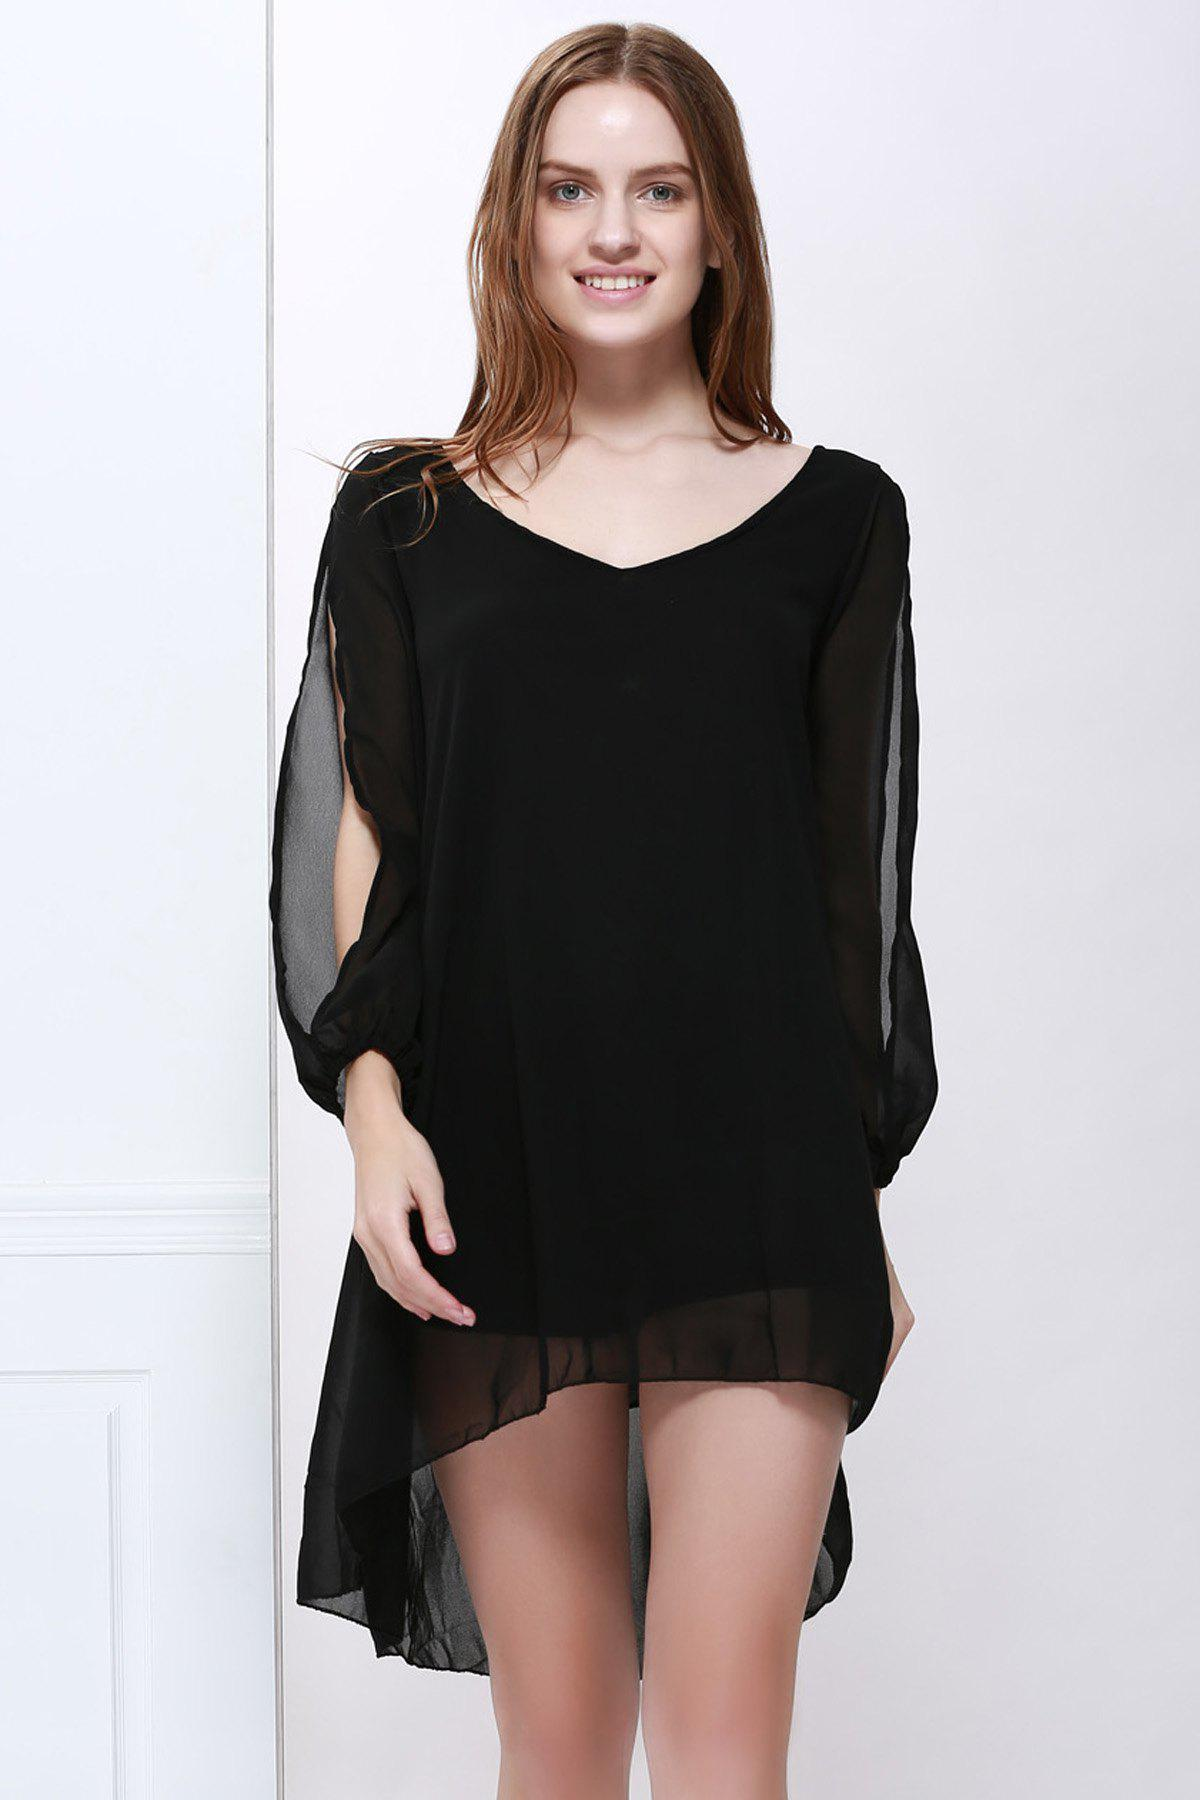 Arc-Shaped Hem Slit Sleeve Design V-Neck Solid Color Pullover Chiffon